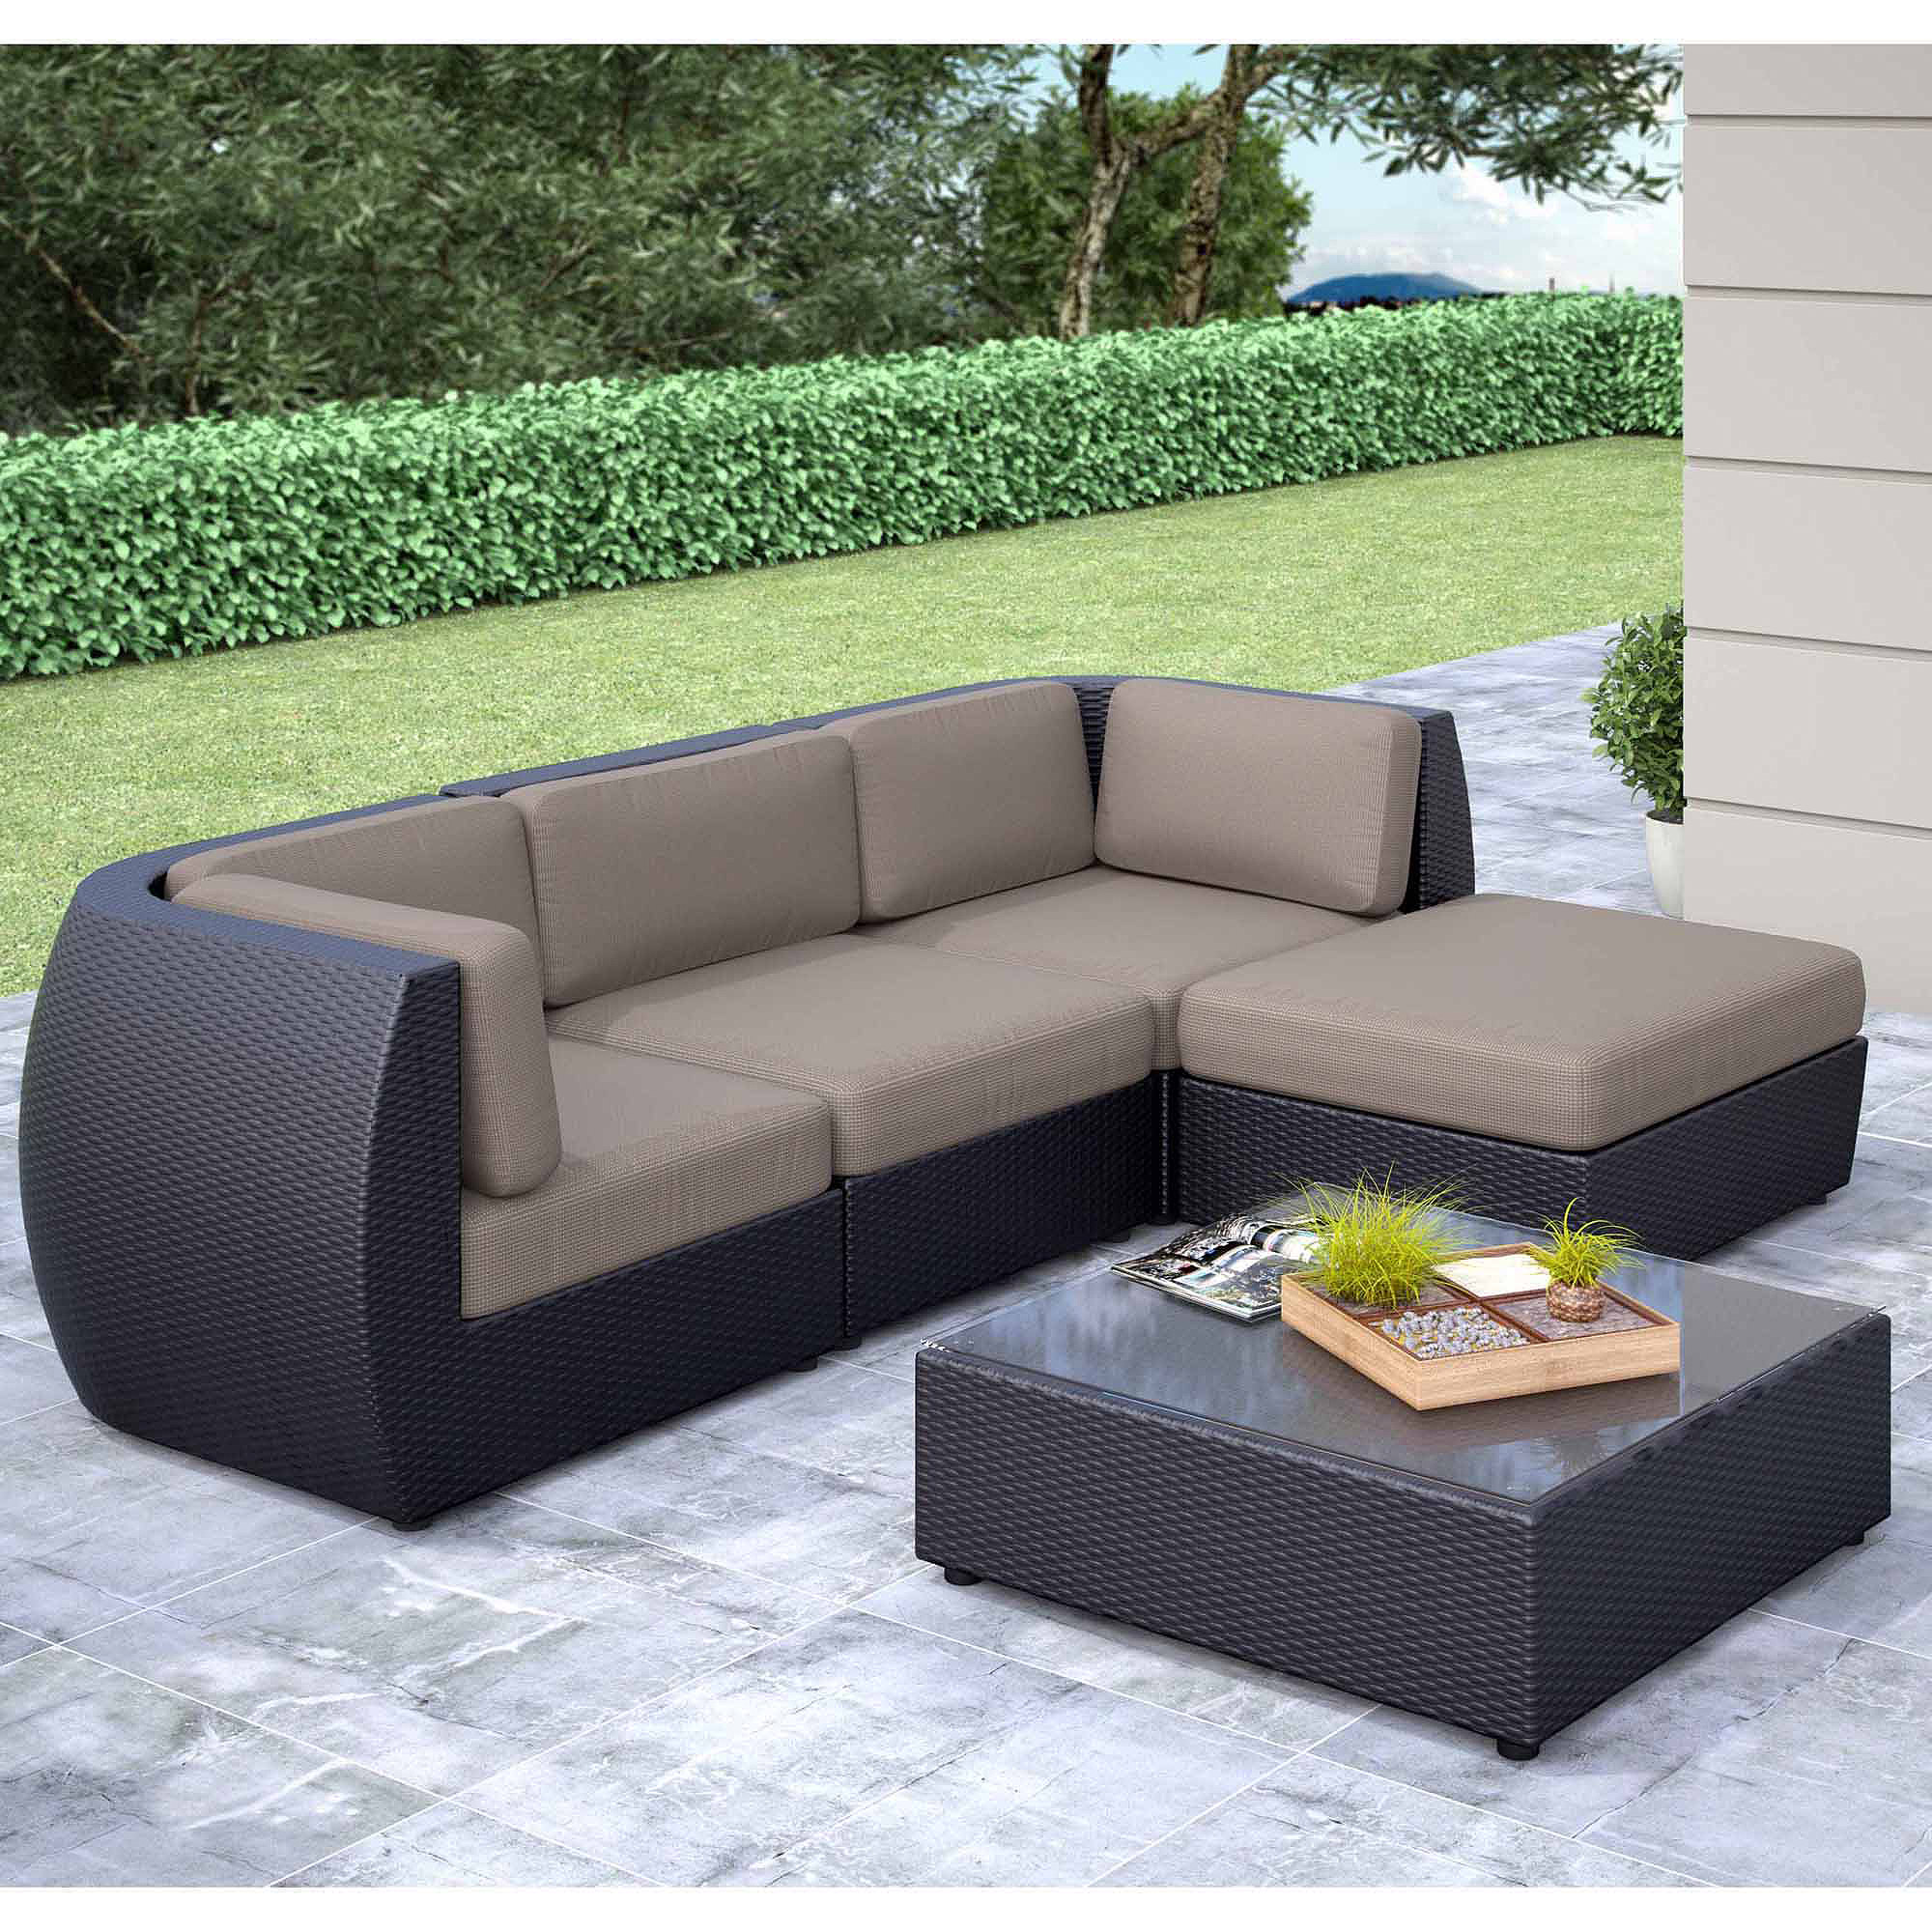 CorLiving Seattle Curved 5-Piece Sofa with Chaise Lounge Patio Set